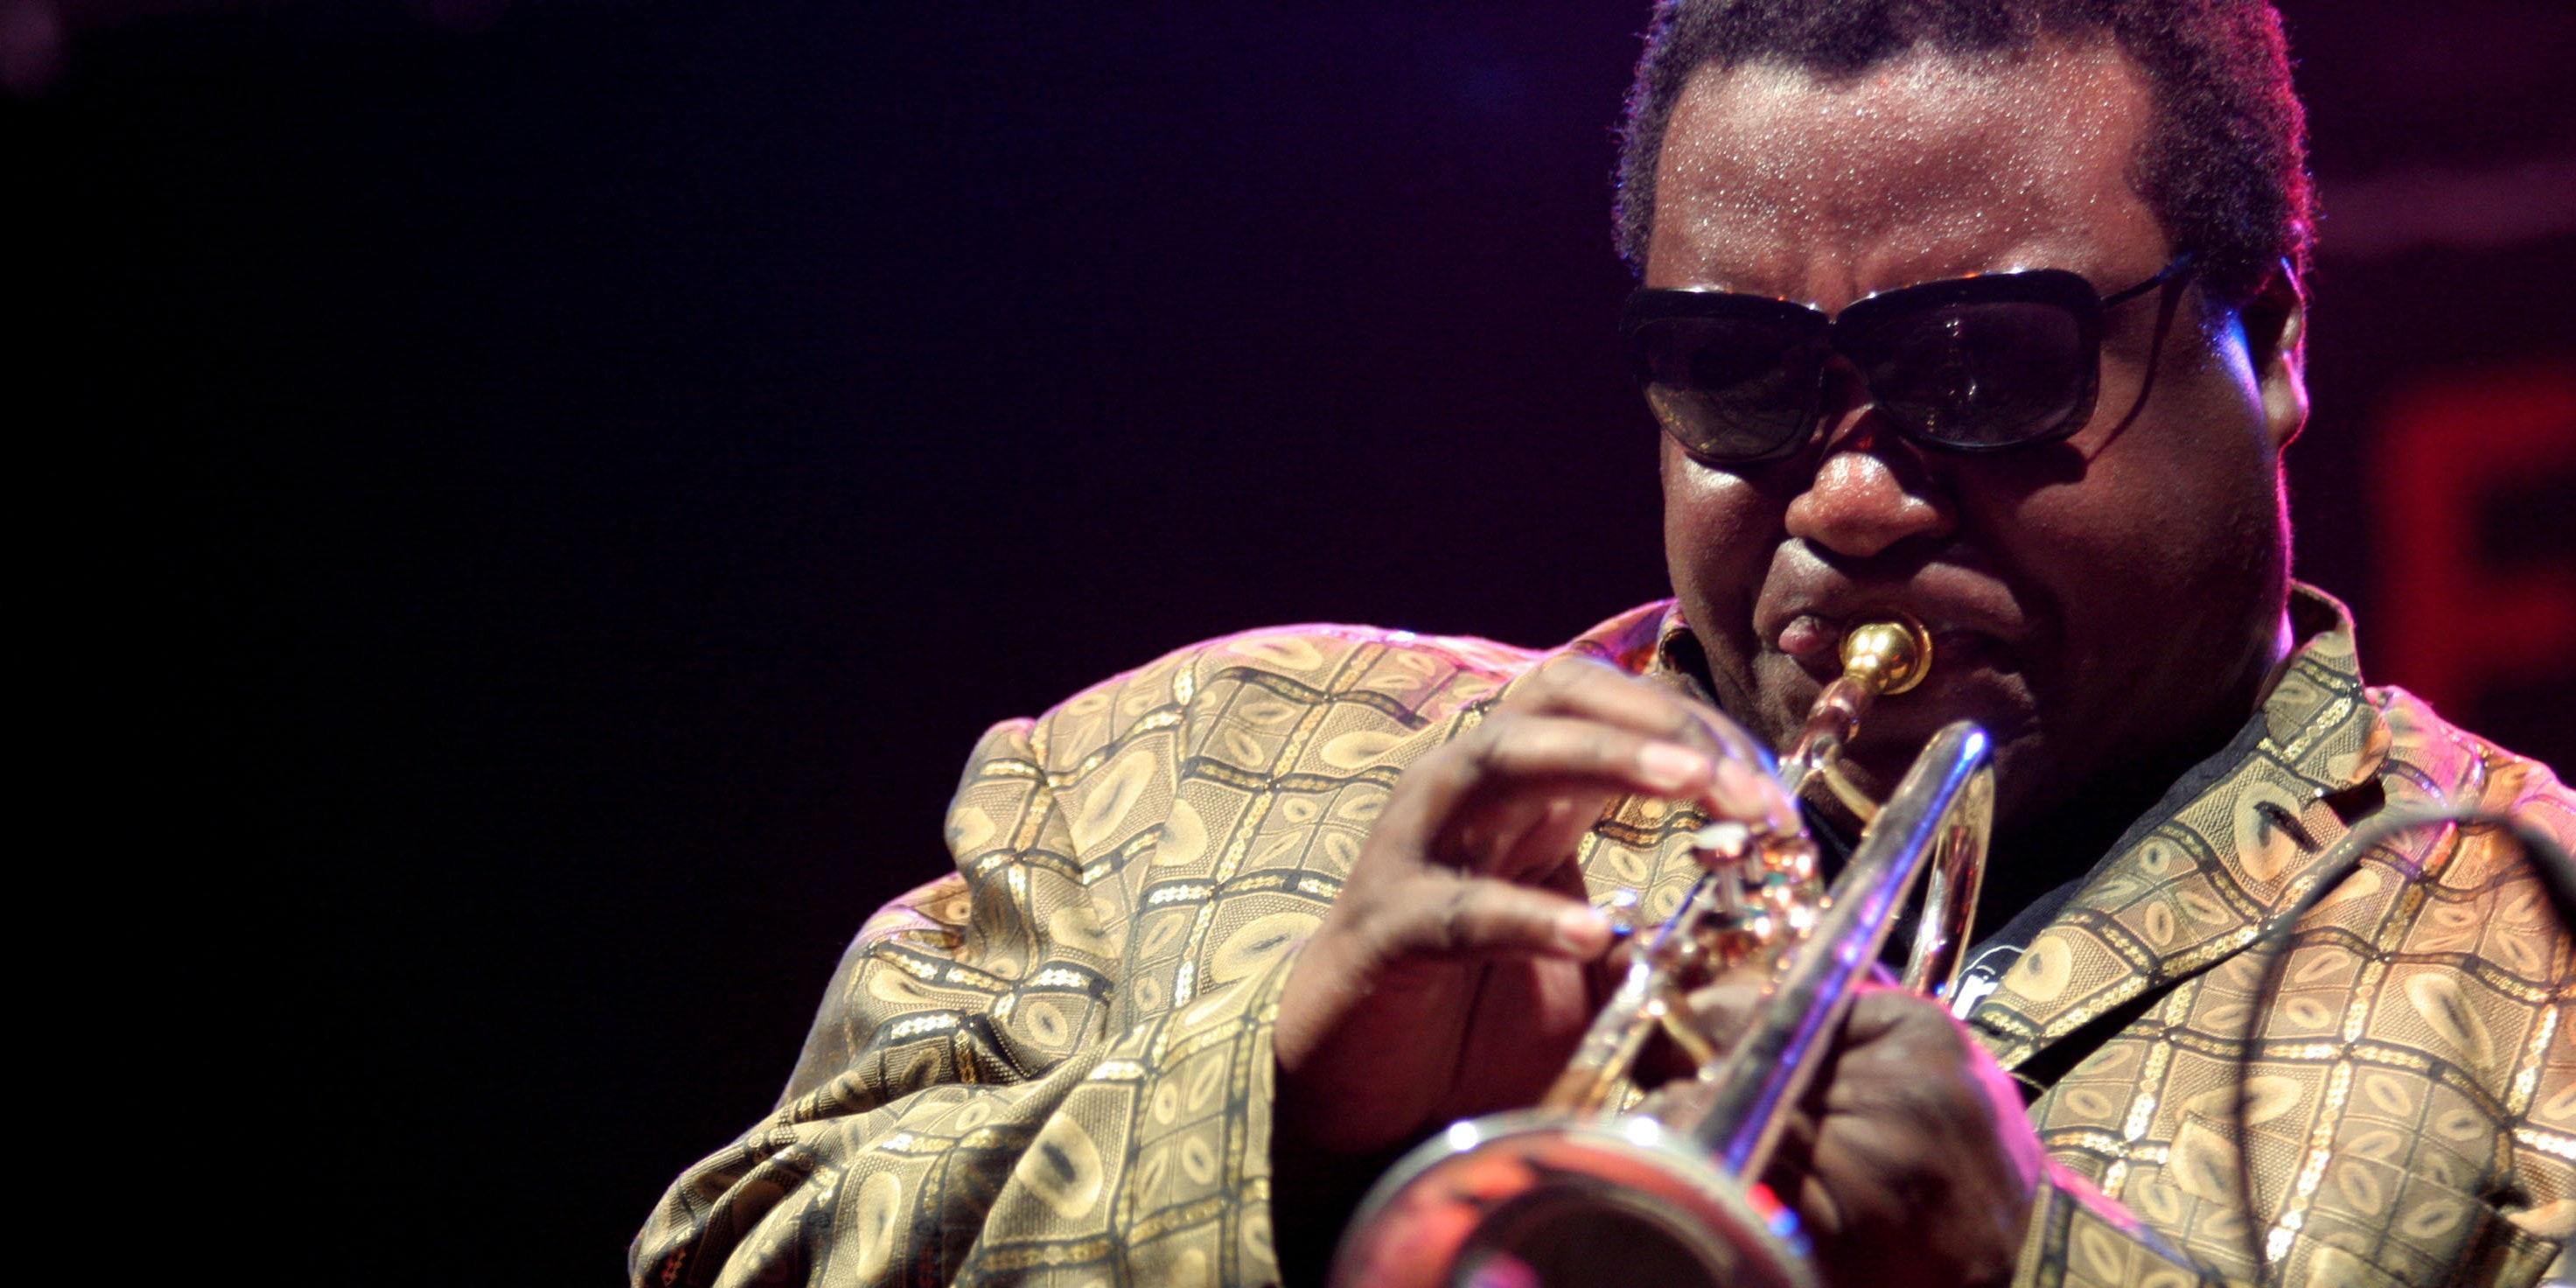 Wallace Roney Jazz Trumpeter Dead At 59 Of Covid 19 Complications